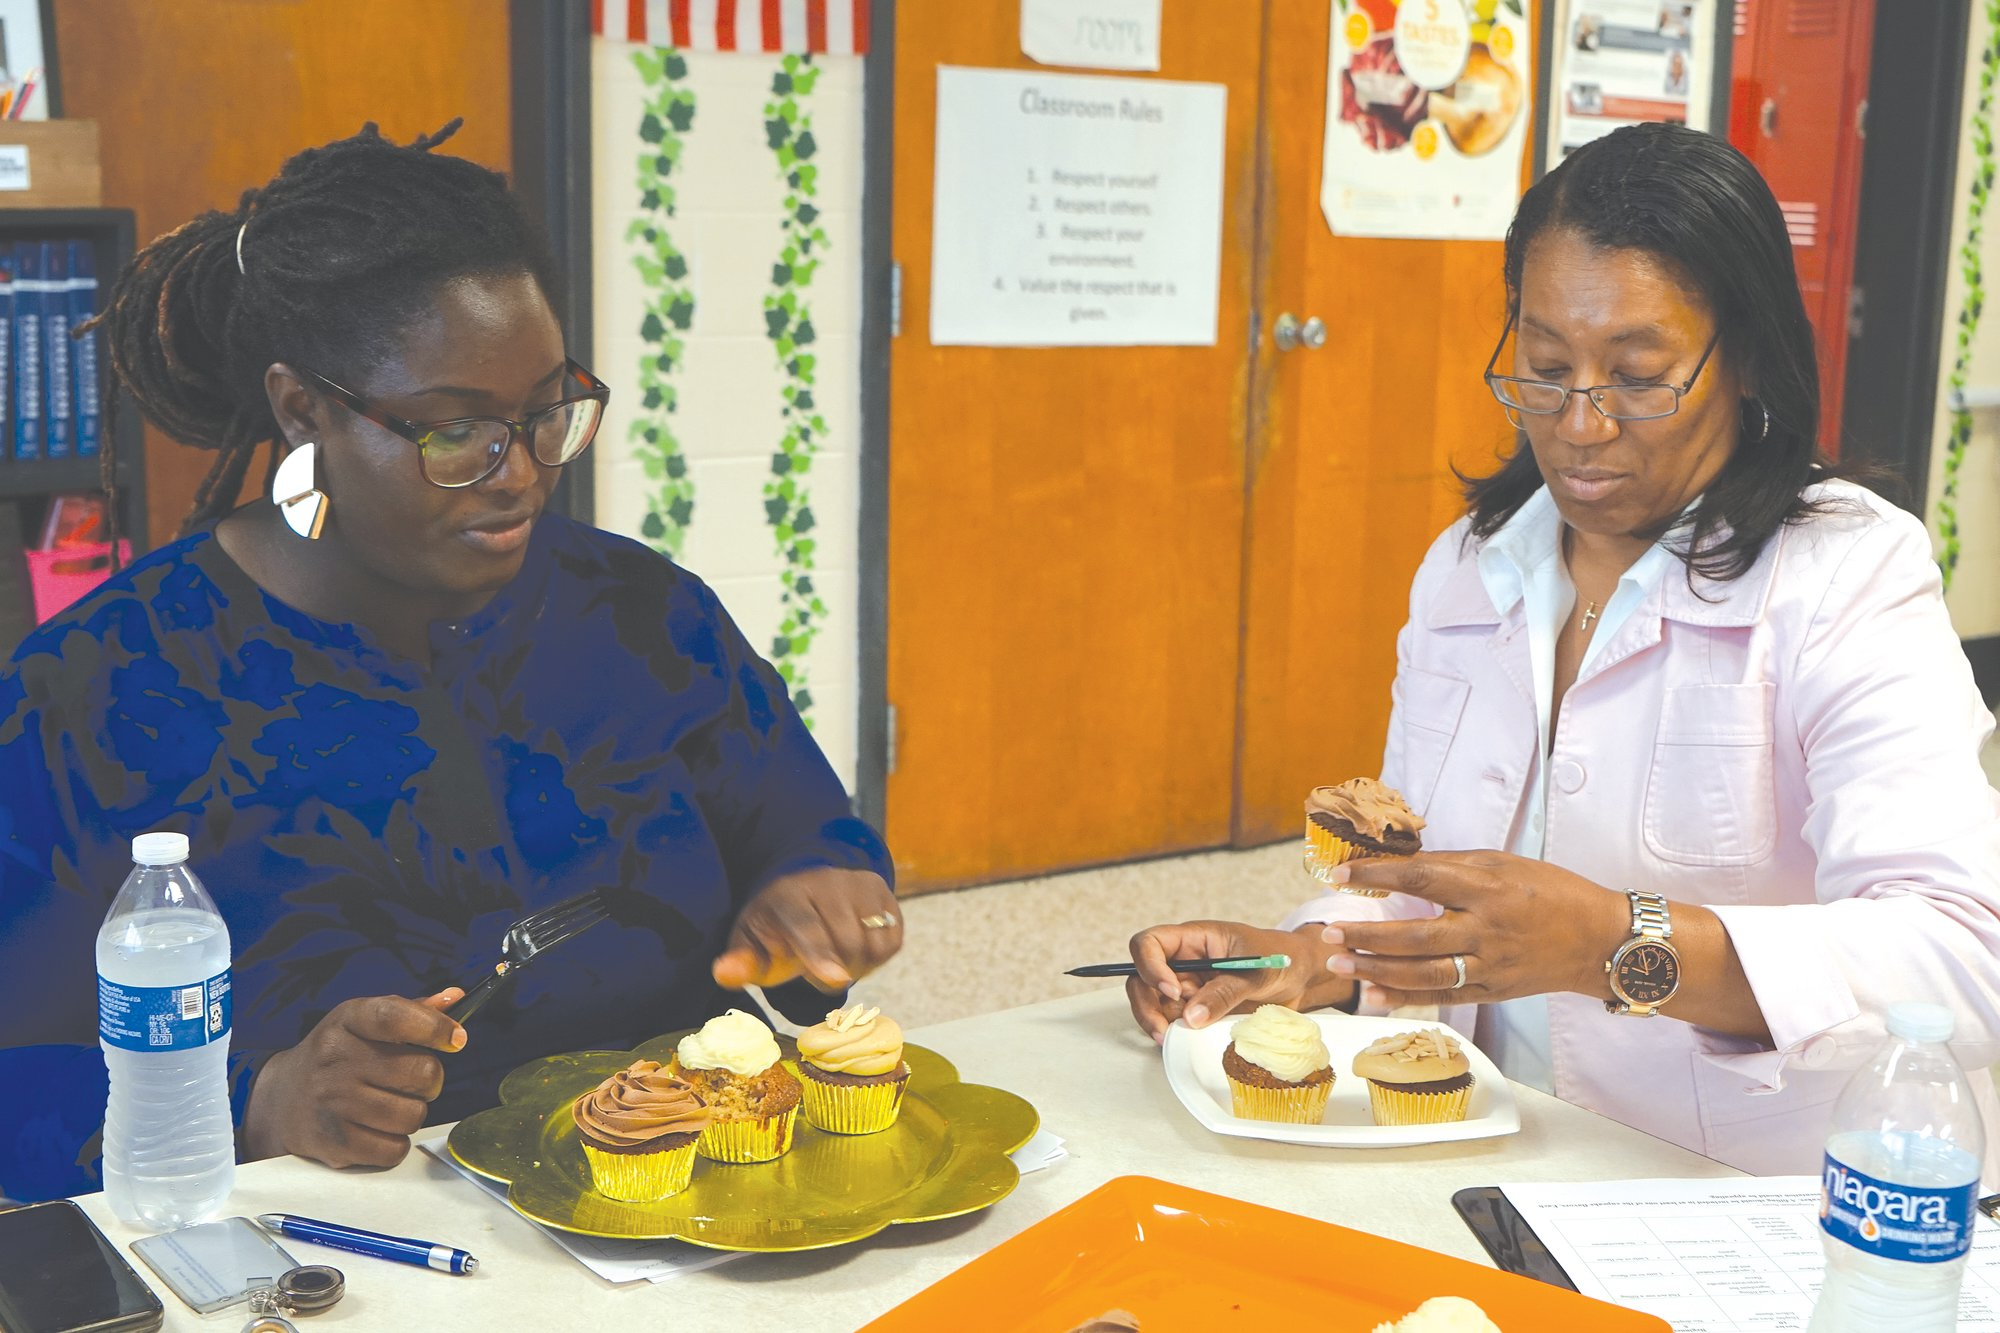 Judges Chef Kia Smith, left, and Sumter School District Superintendent Penelope Martin-Knox judge the appearance of the autumn cupcakes before taking a bite.